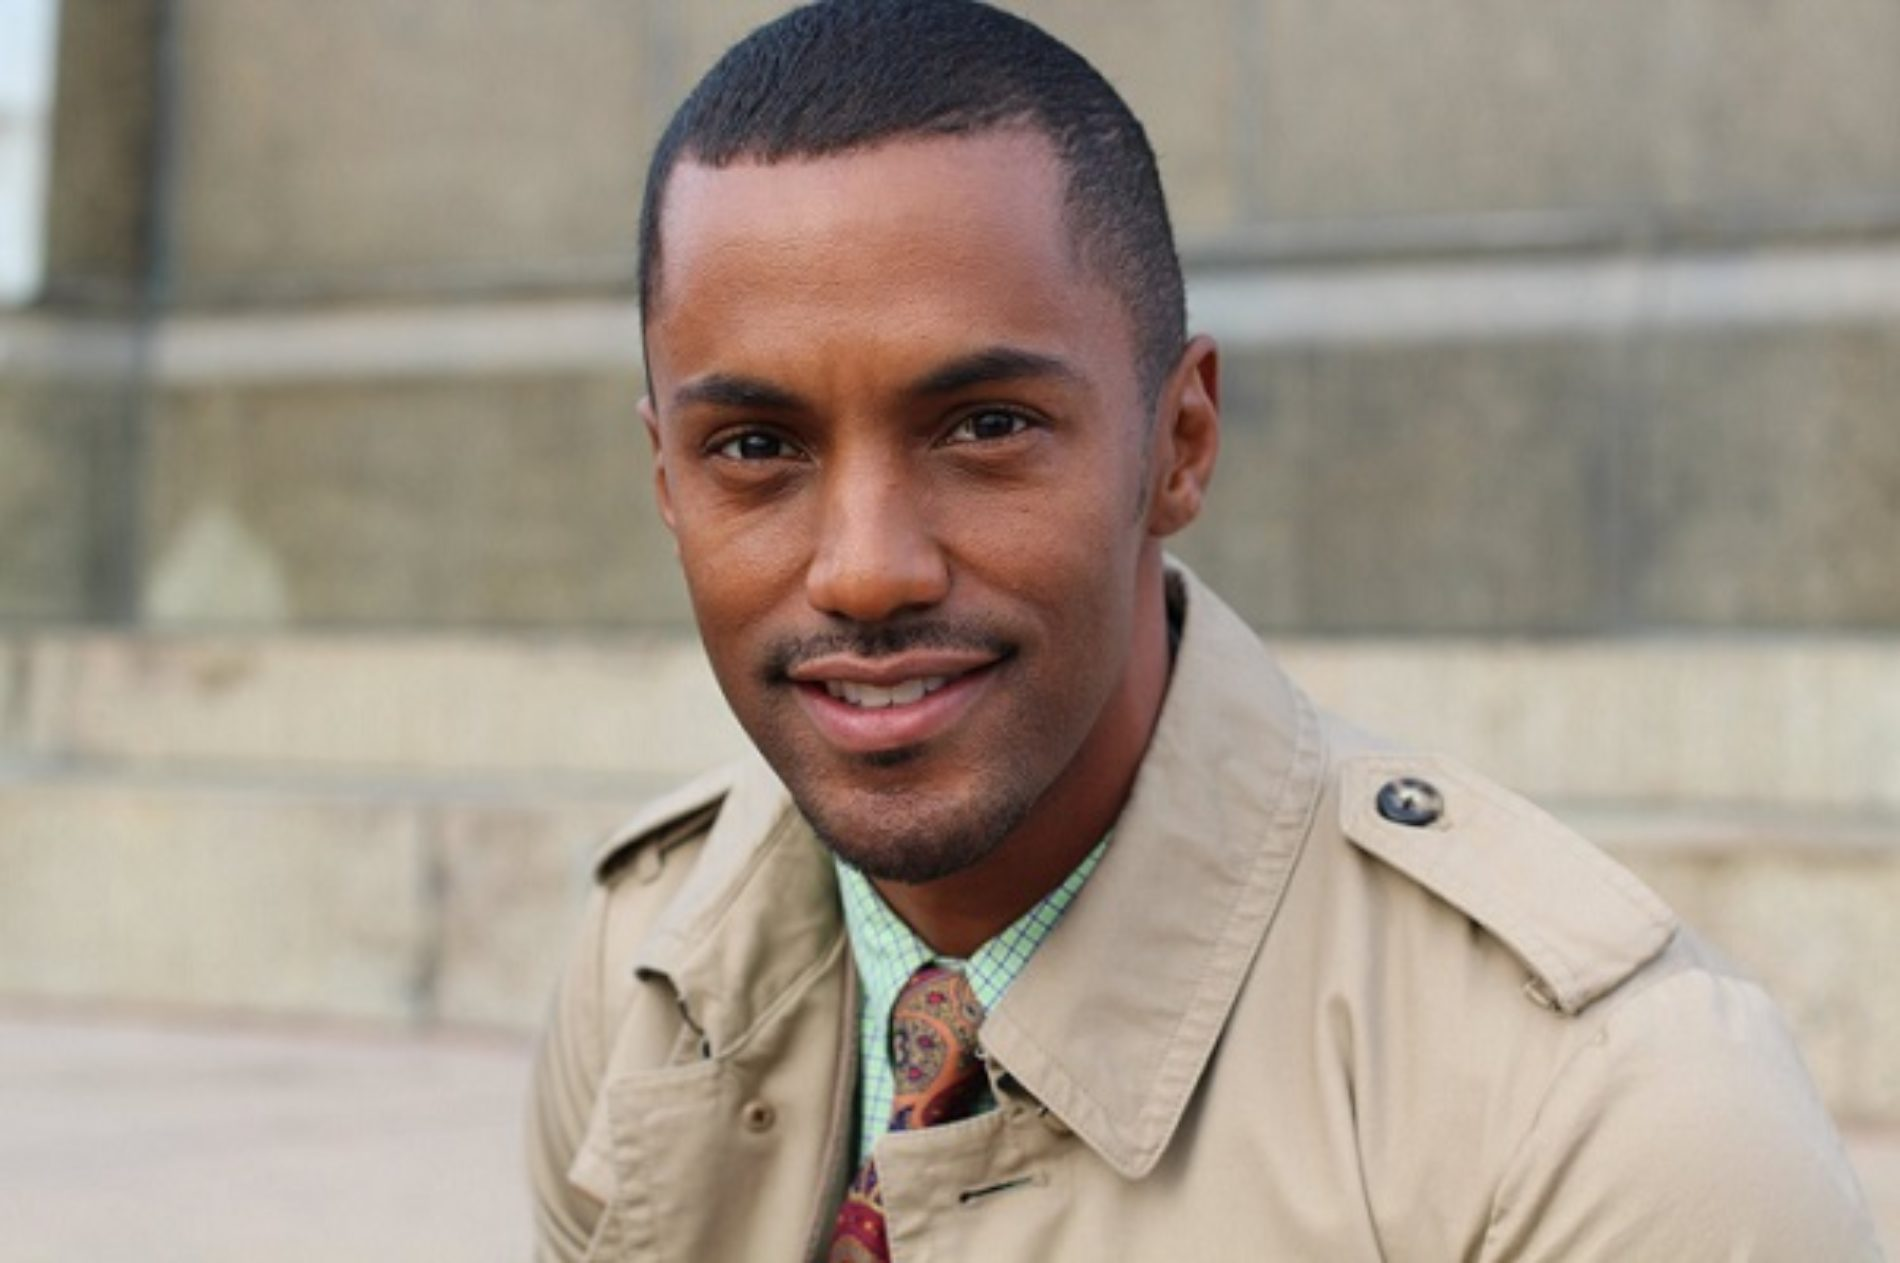 Actor Darryl Stephens speaks on his struggles with being black and gay in Hollywood